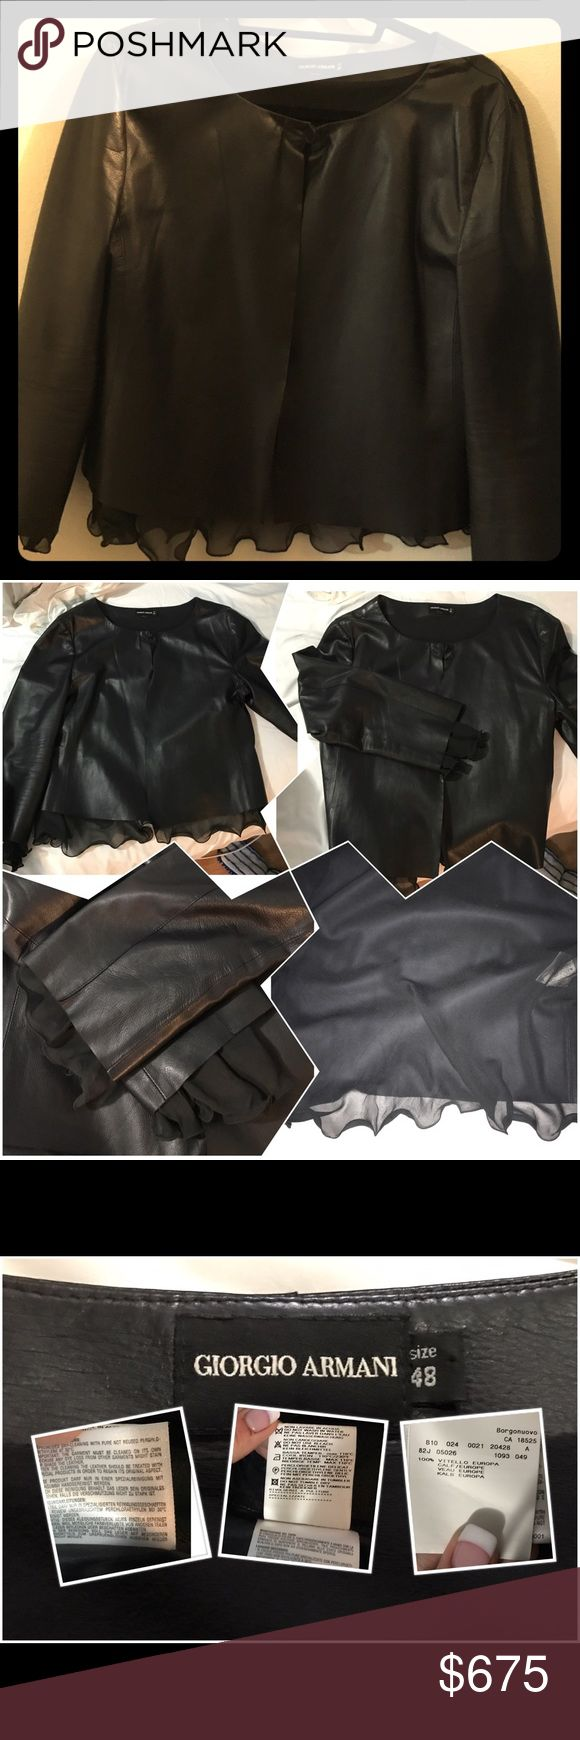 Giorgio Armani Leather Jacket with ruffled accents In pristine condition. Worn one time. Ruffled lining inside that peaks out the sleeves and the bottom. Giorgio Armani Jackets & Coats